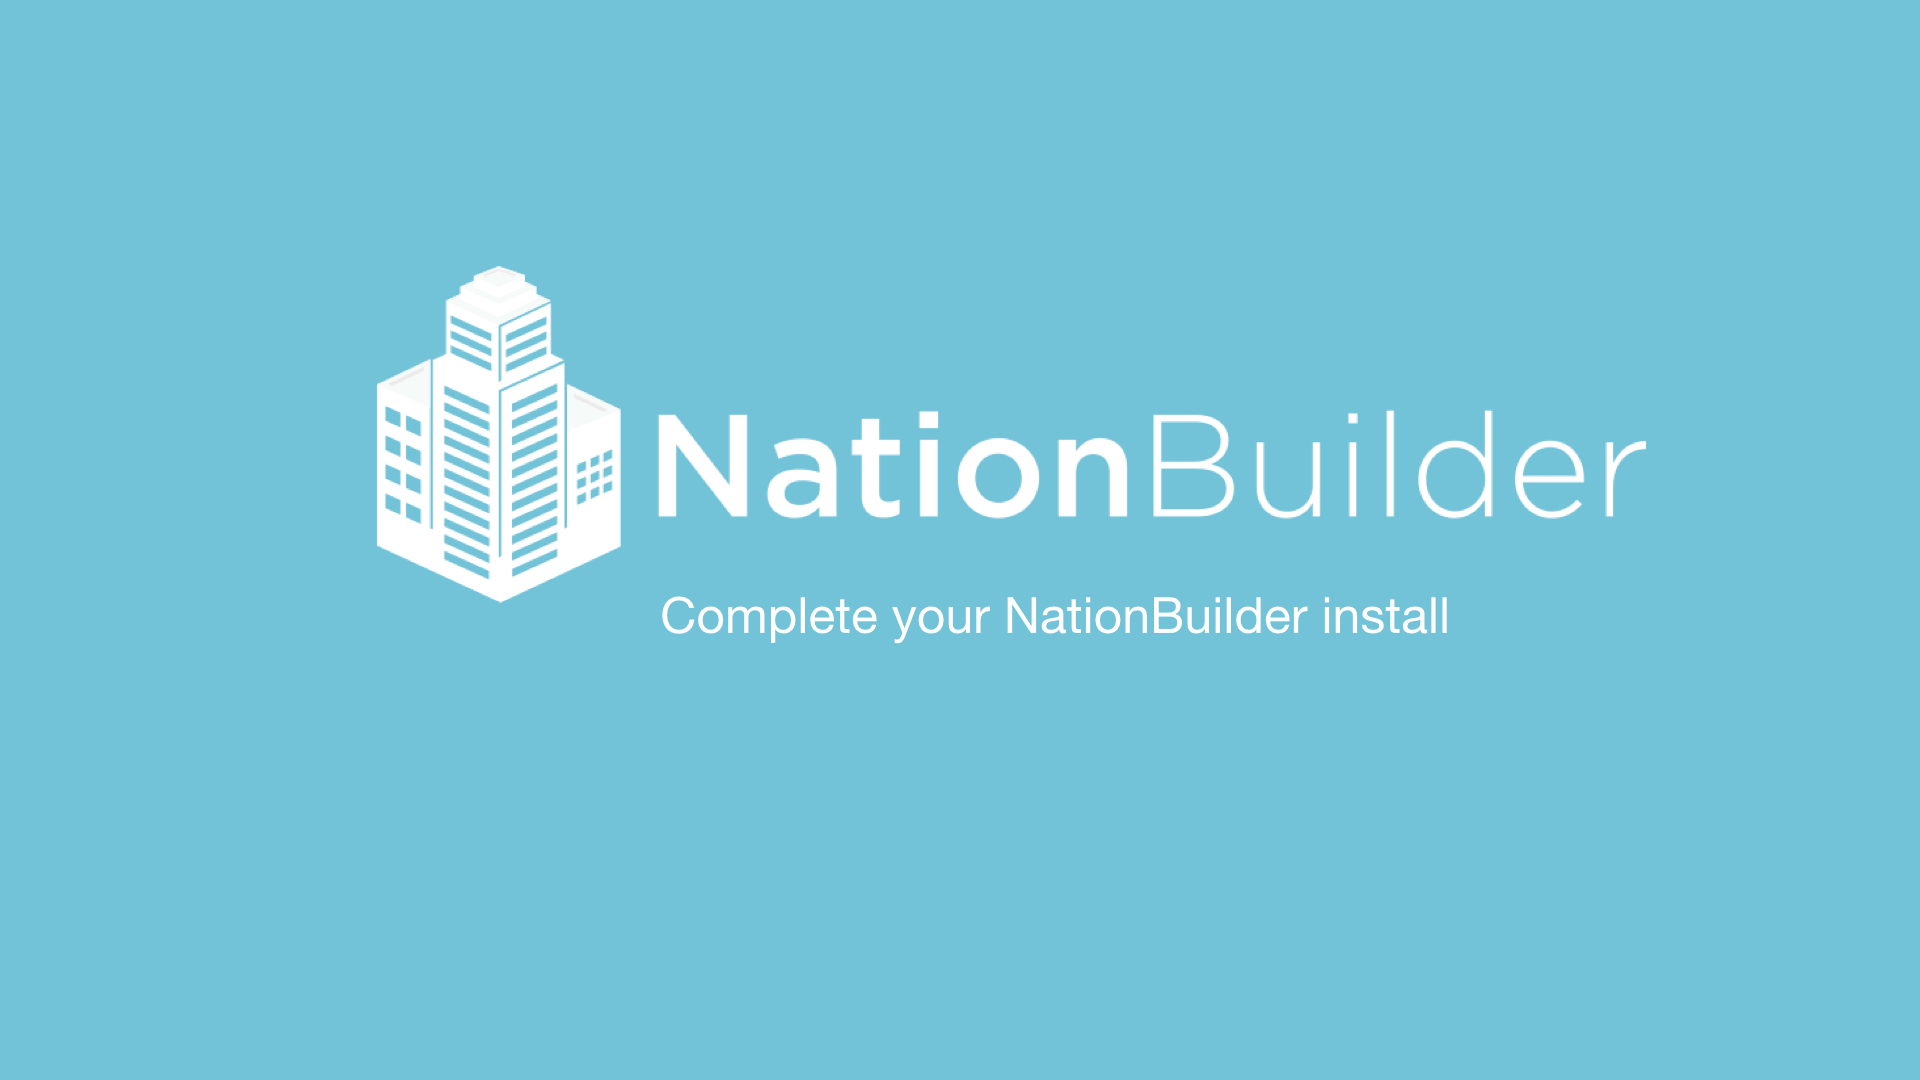 complete_your_nationbuilder_install.001.jpg